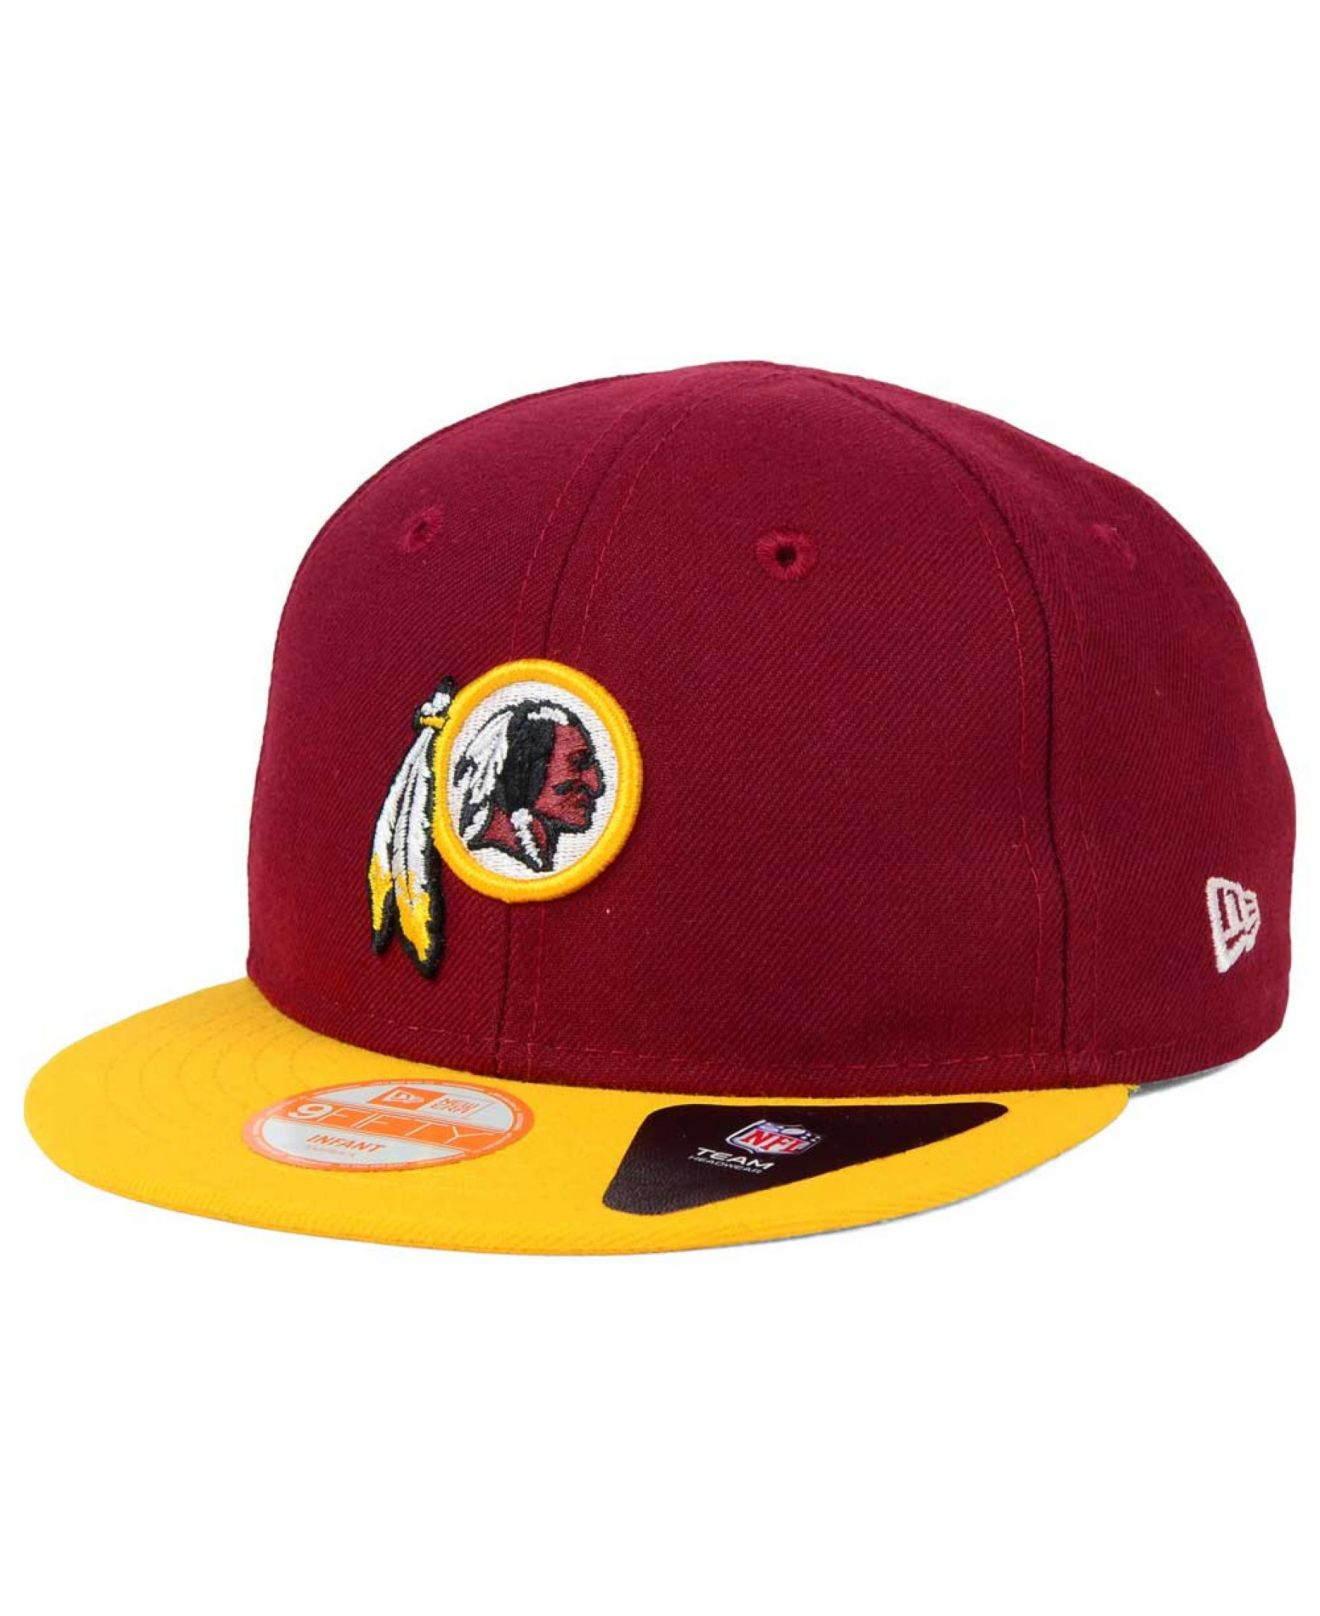 cf235529846 Lyst - KTZ Babies  Washington Redskins My 1st 9fifty Snapback Cap in ...